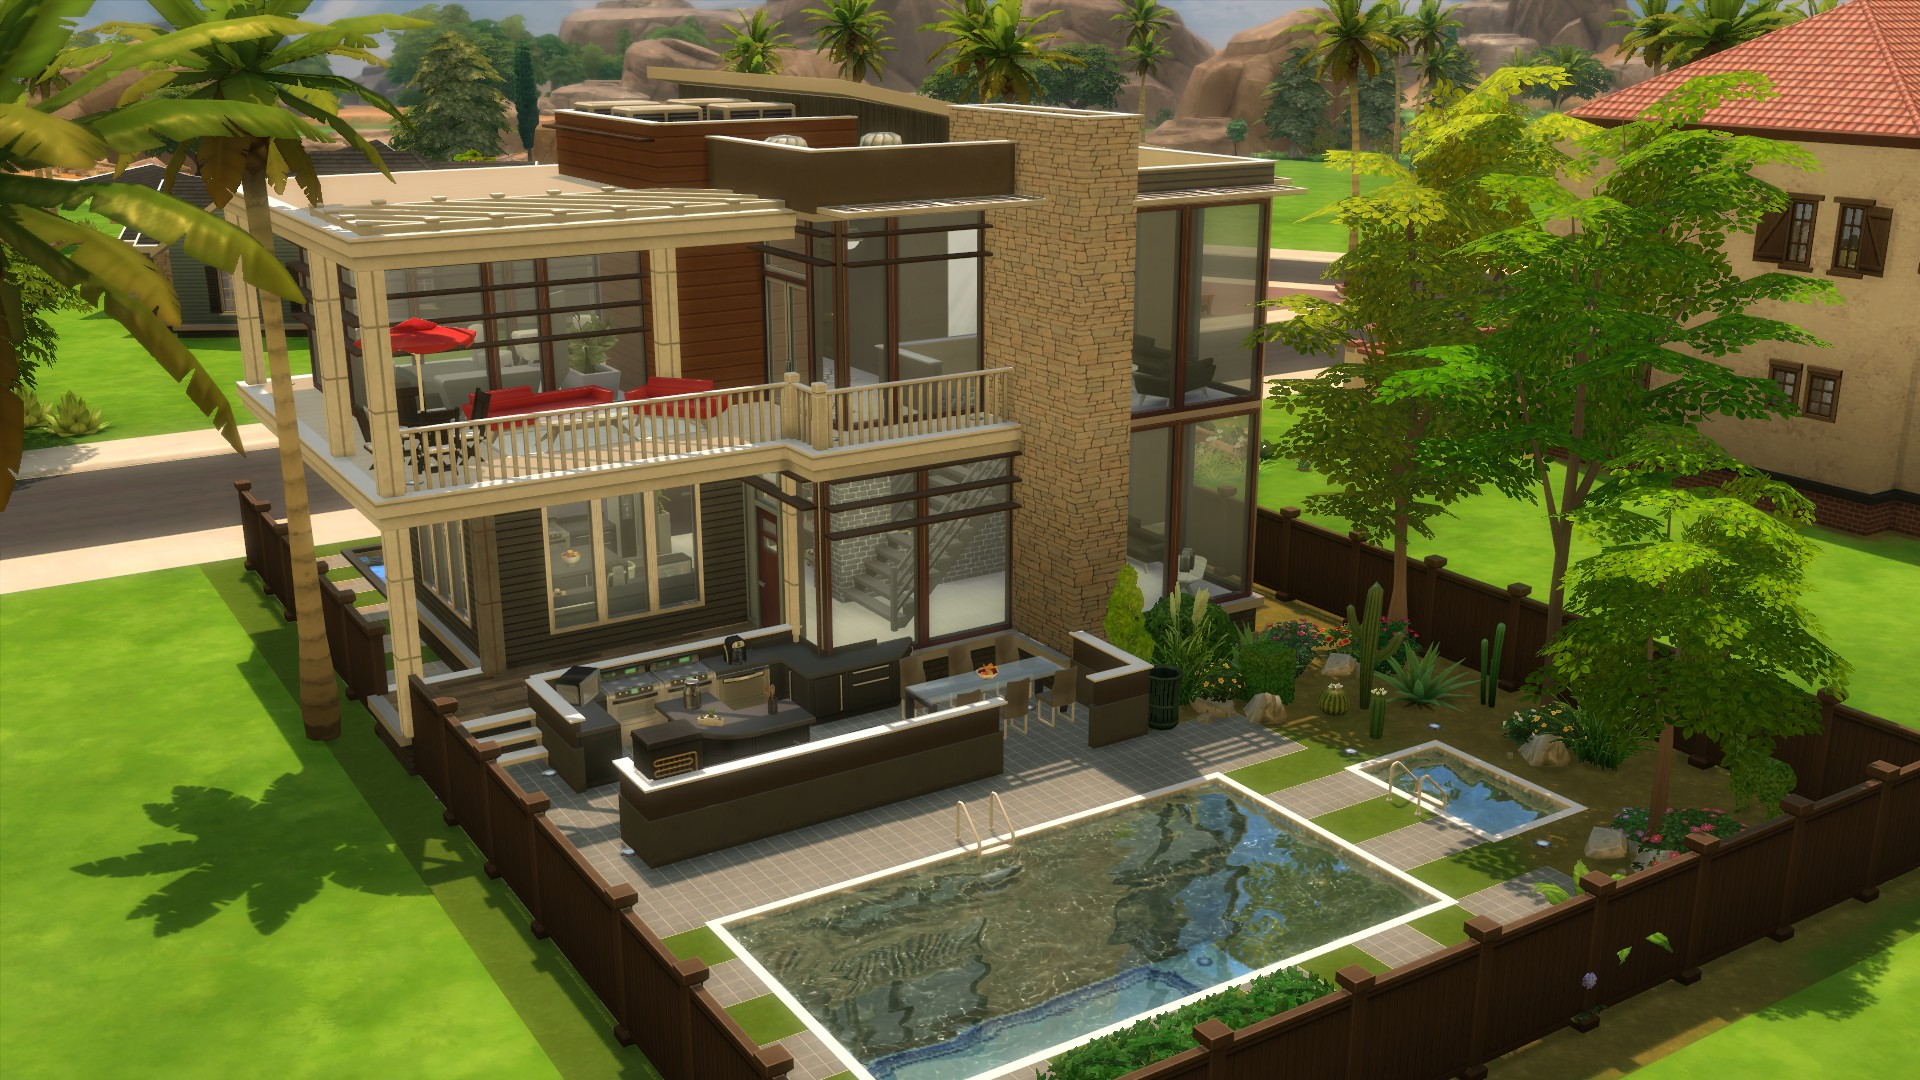 Mod The Sims - Modern Basegame Mansion